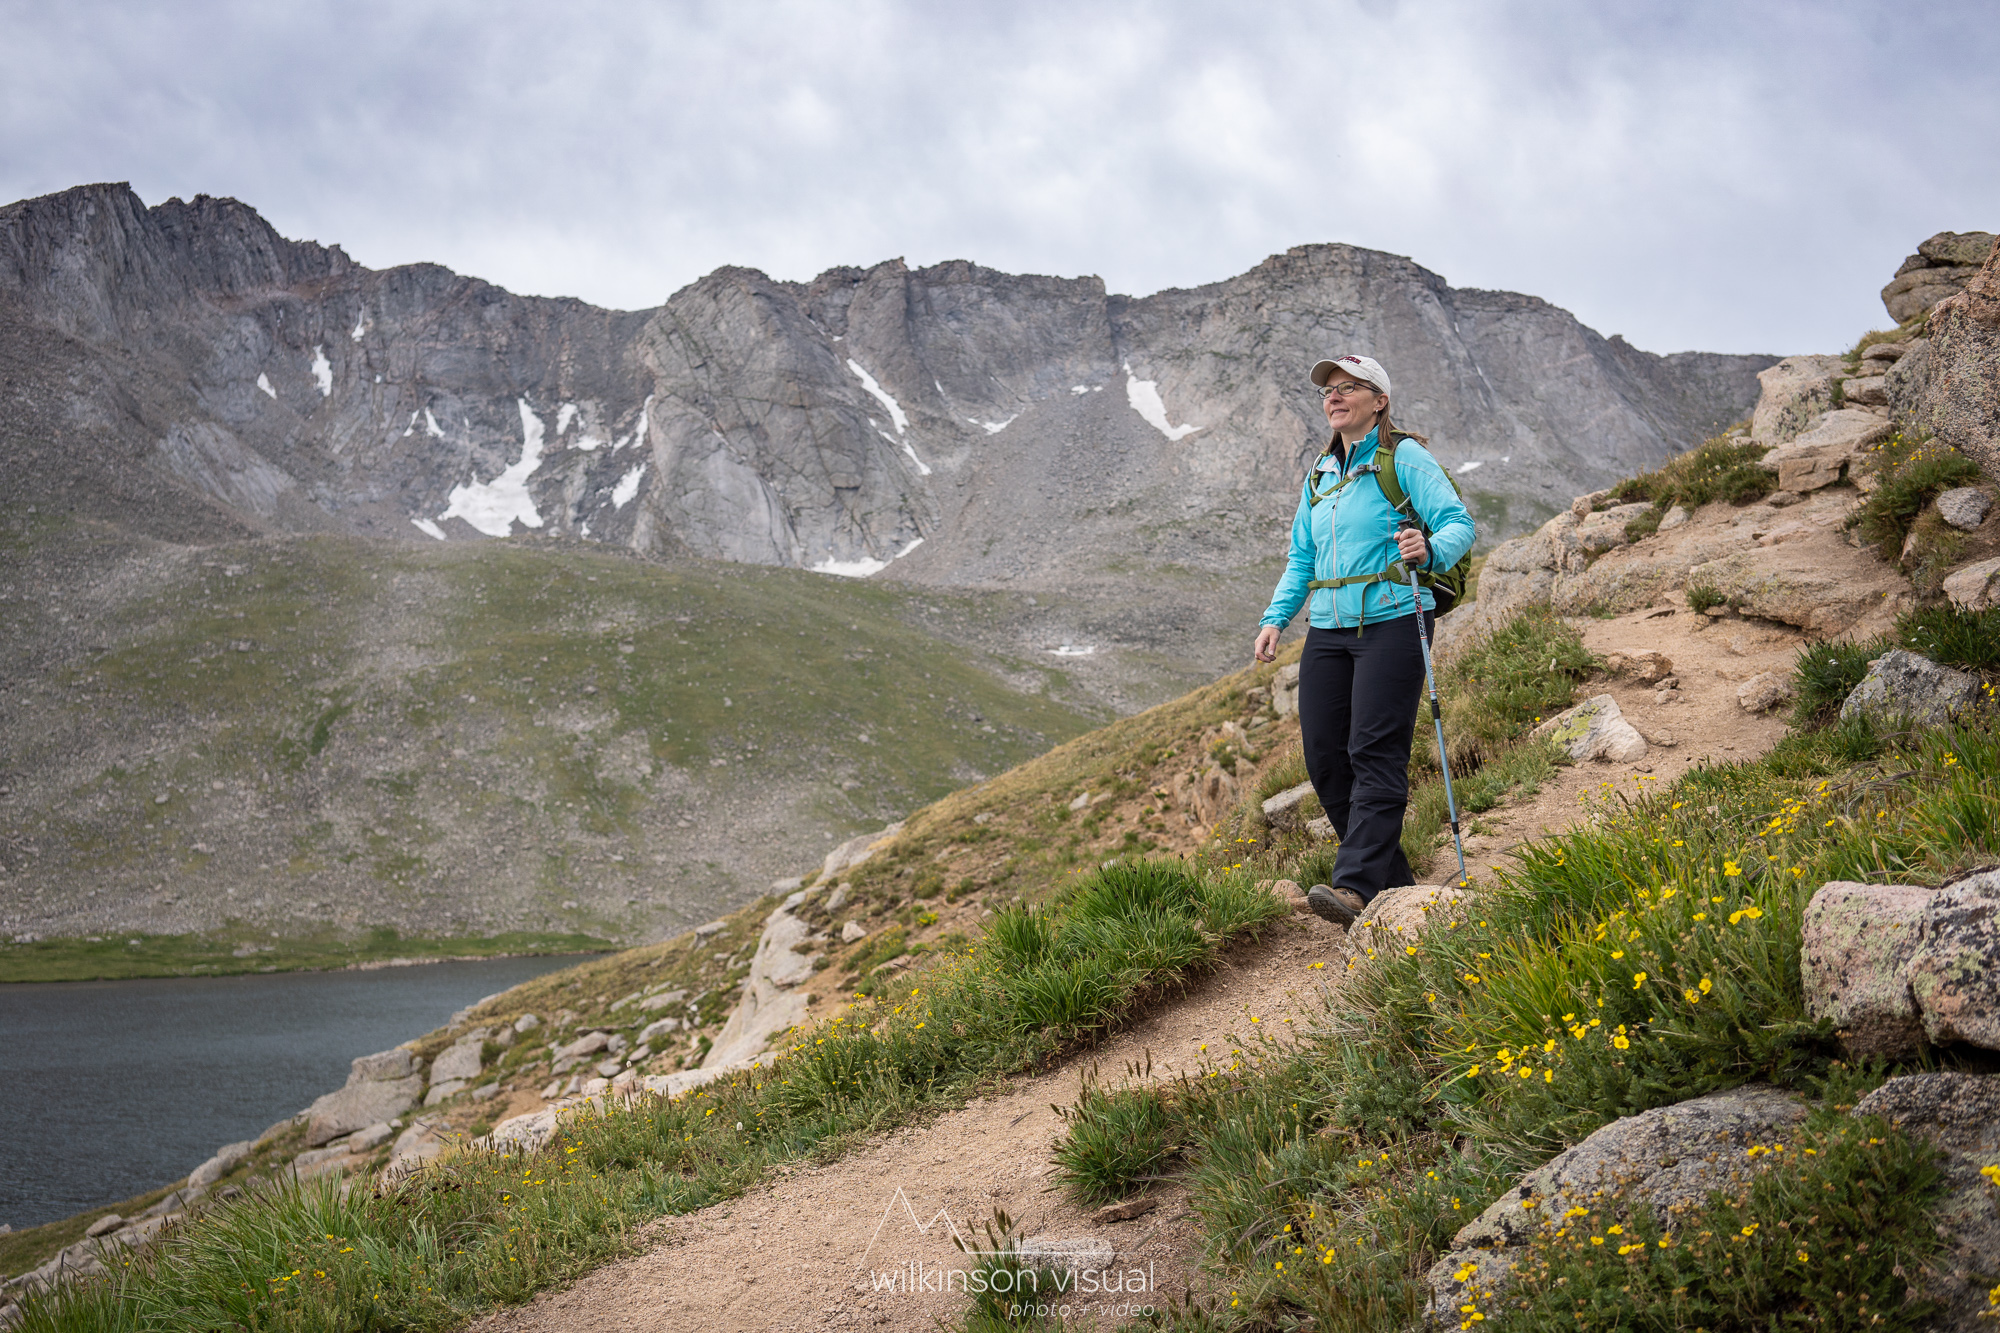 Hiking along the ridge trail from Summit Lake to the top of Mt. Evans, seen in the background here.